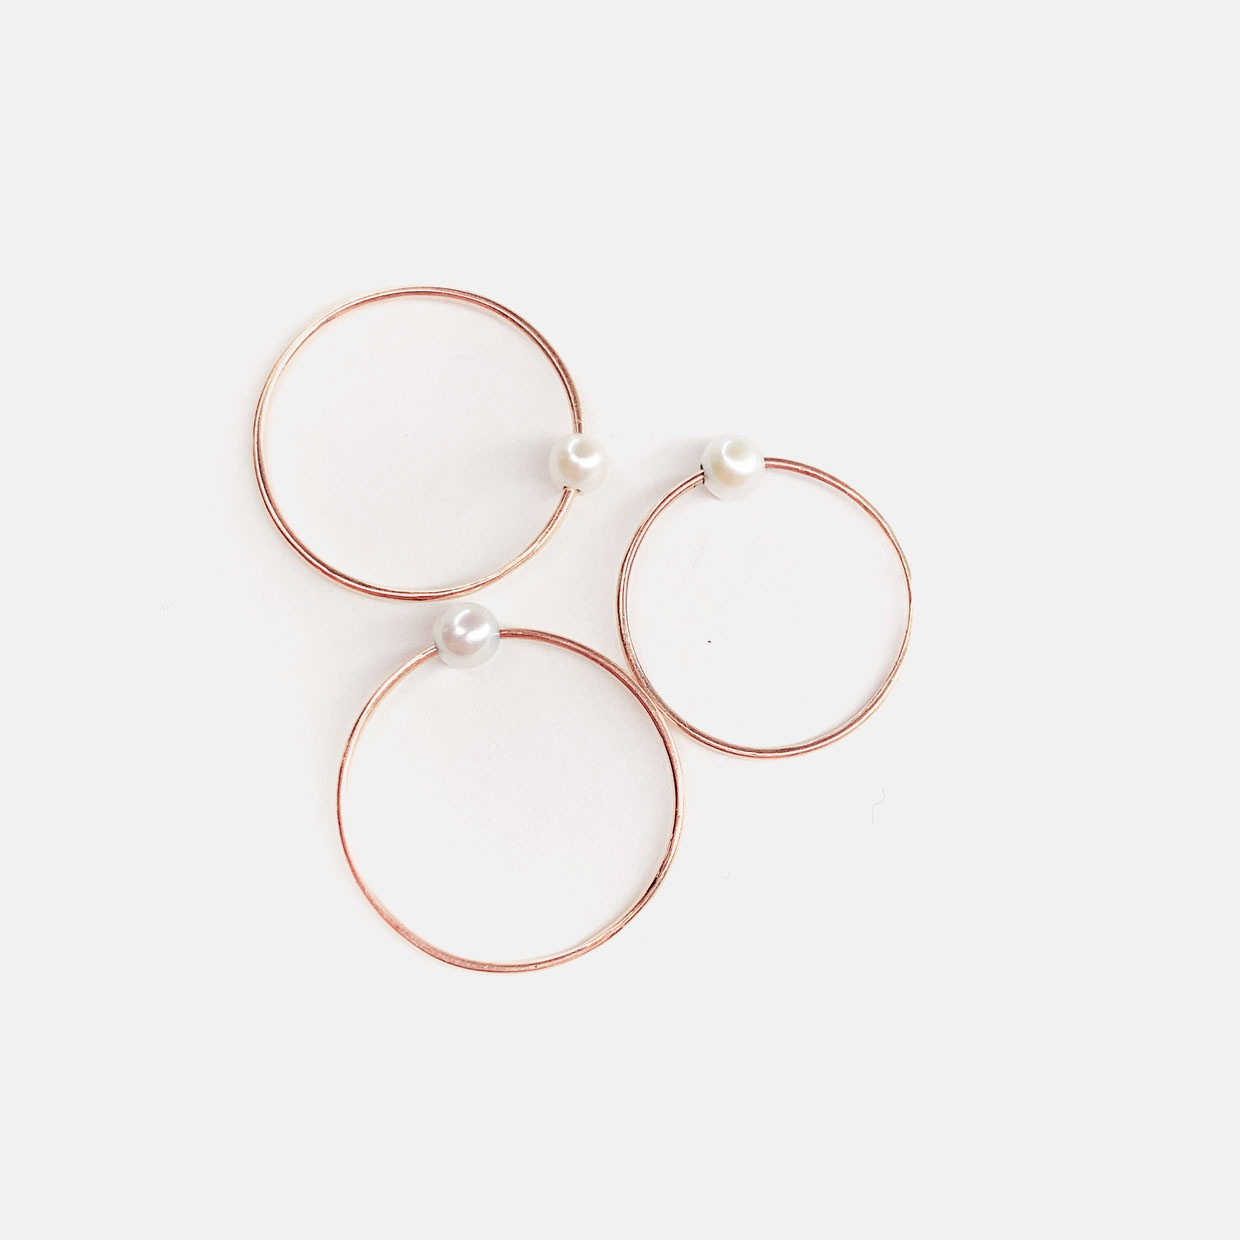 The THOUGHTLESS ring - oro rosa